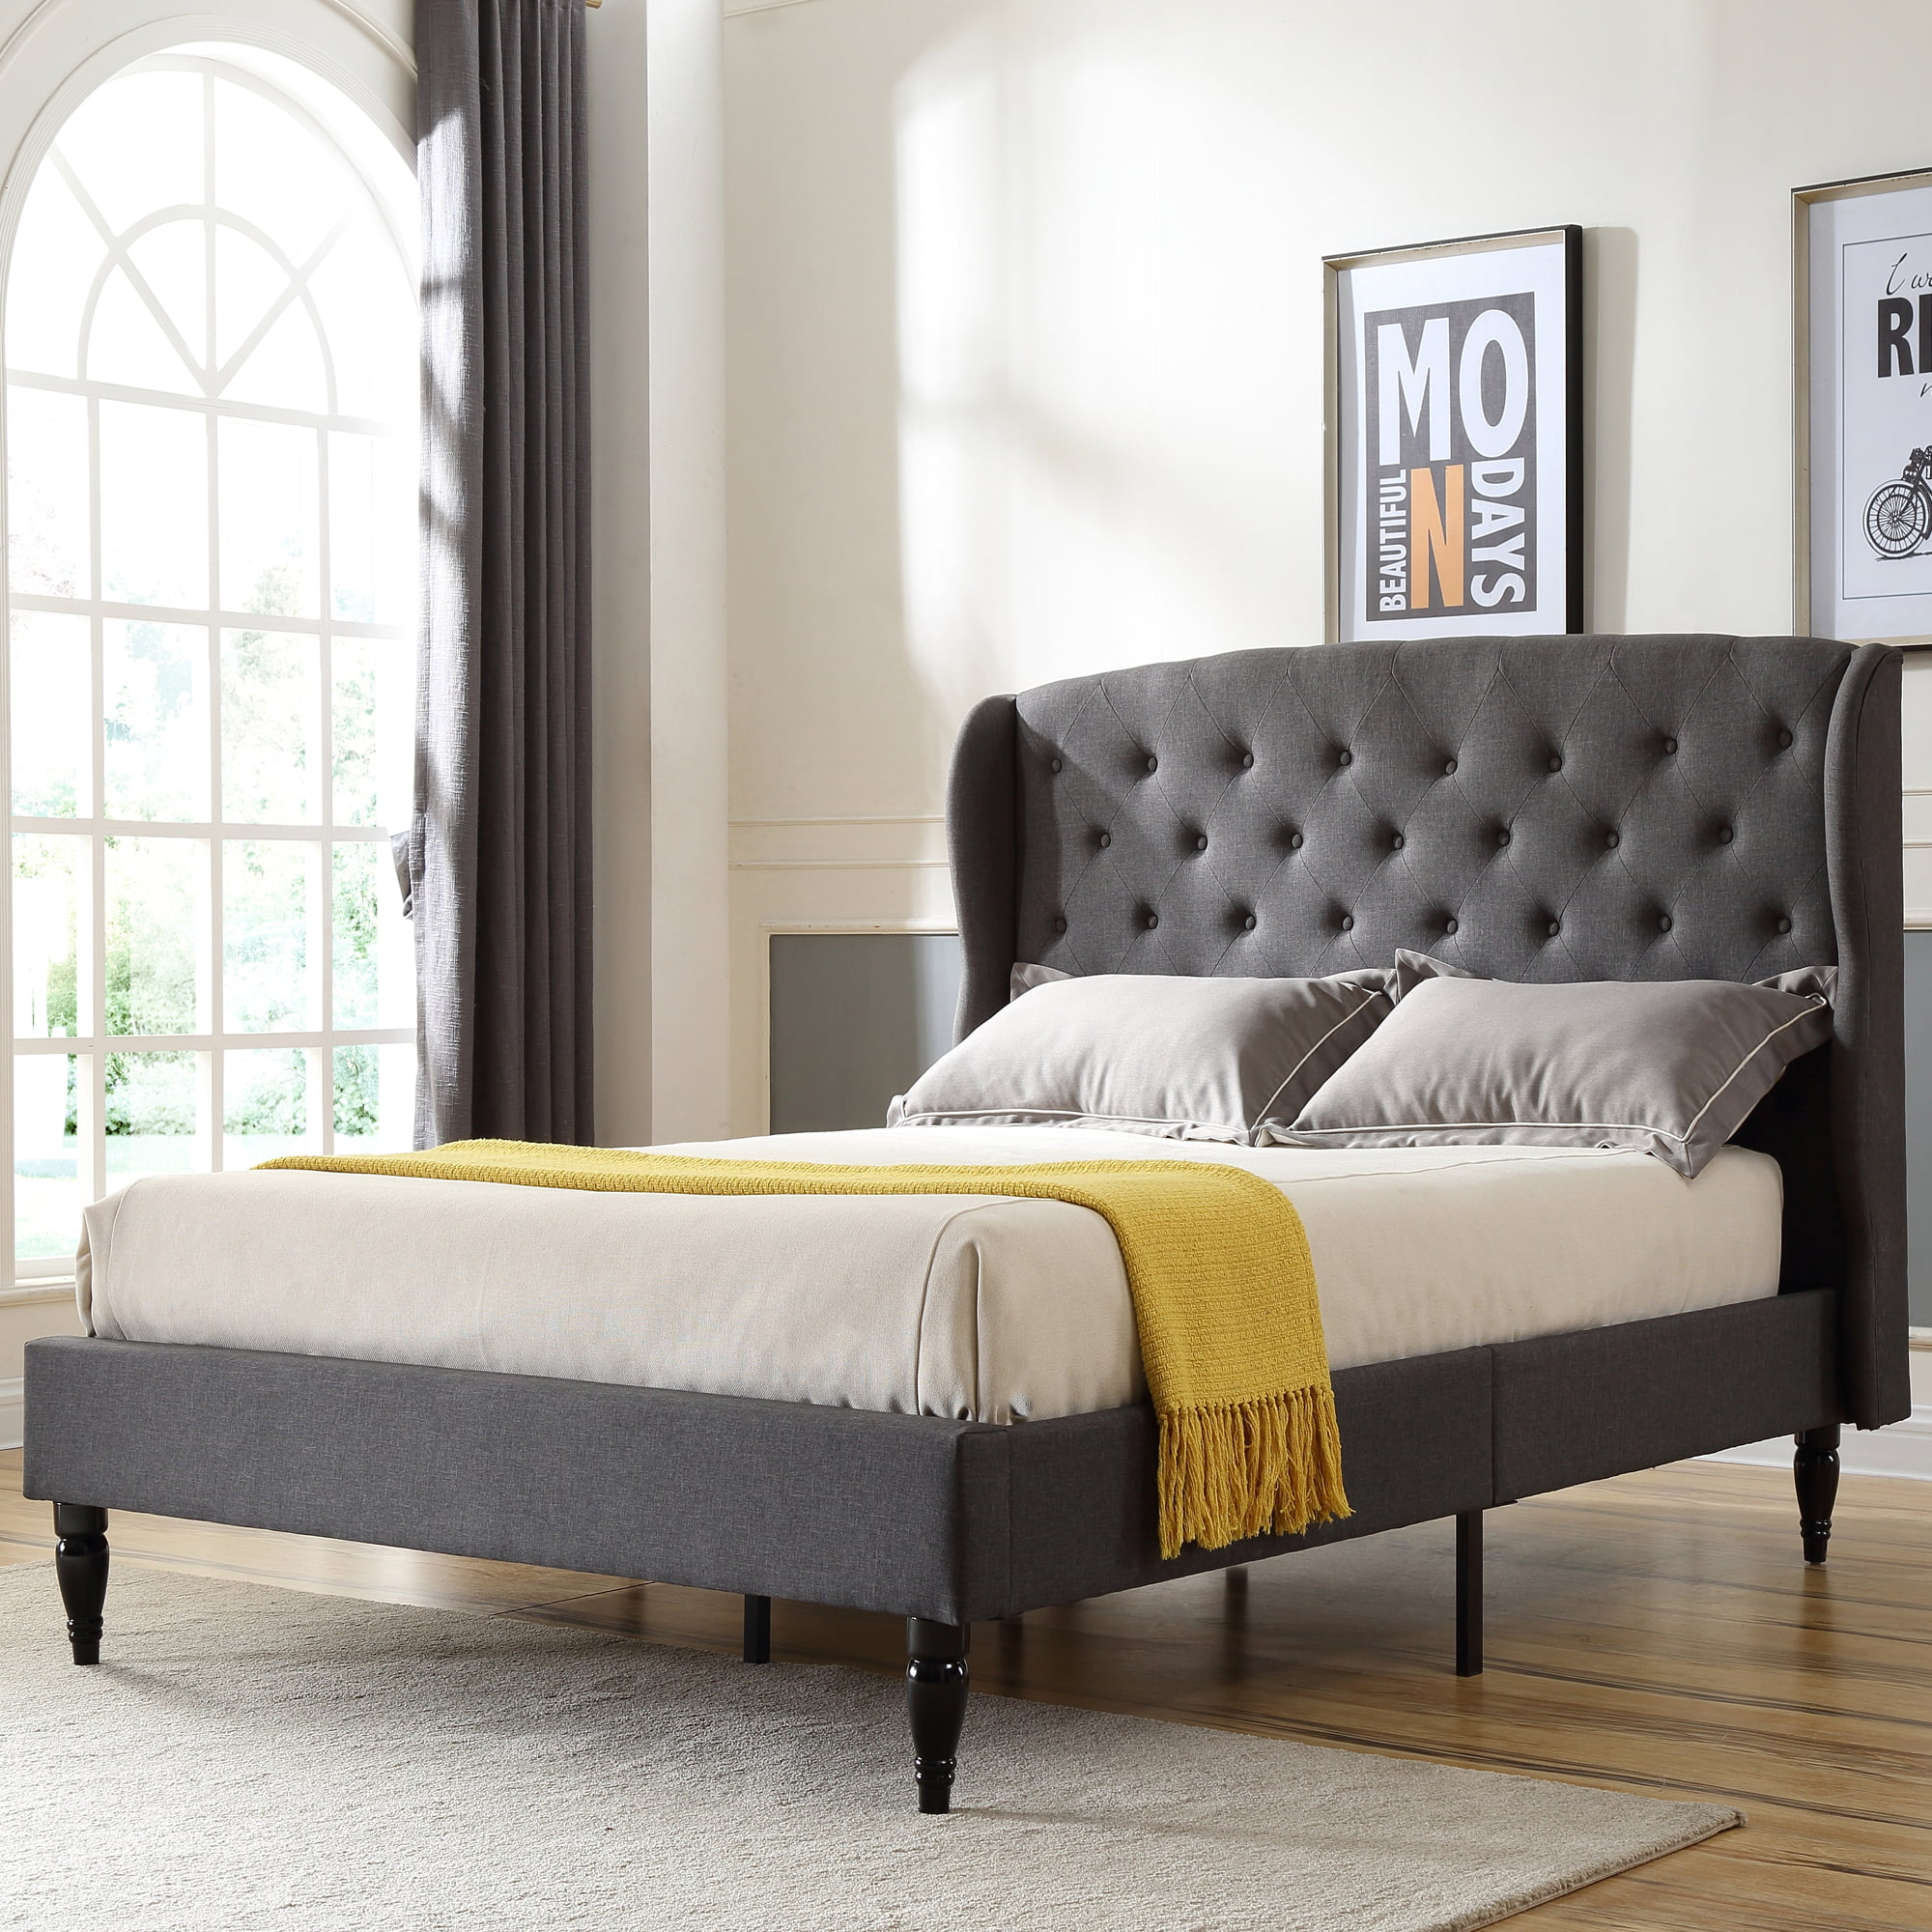 Modern Sleep Coventry Upholstered Platform Bed Headboard And Metal Frame With Wood Slat Support Multiple Sizes Available In Linen Light Grey And Grey Walmart Com Walmart Com